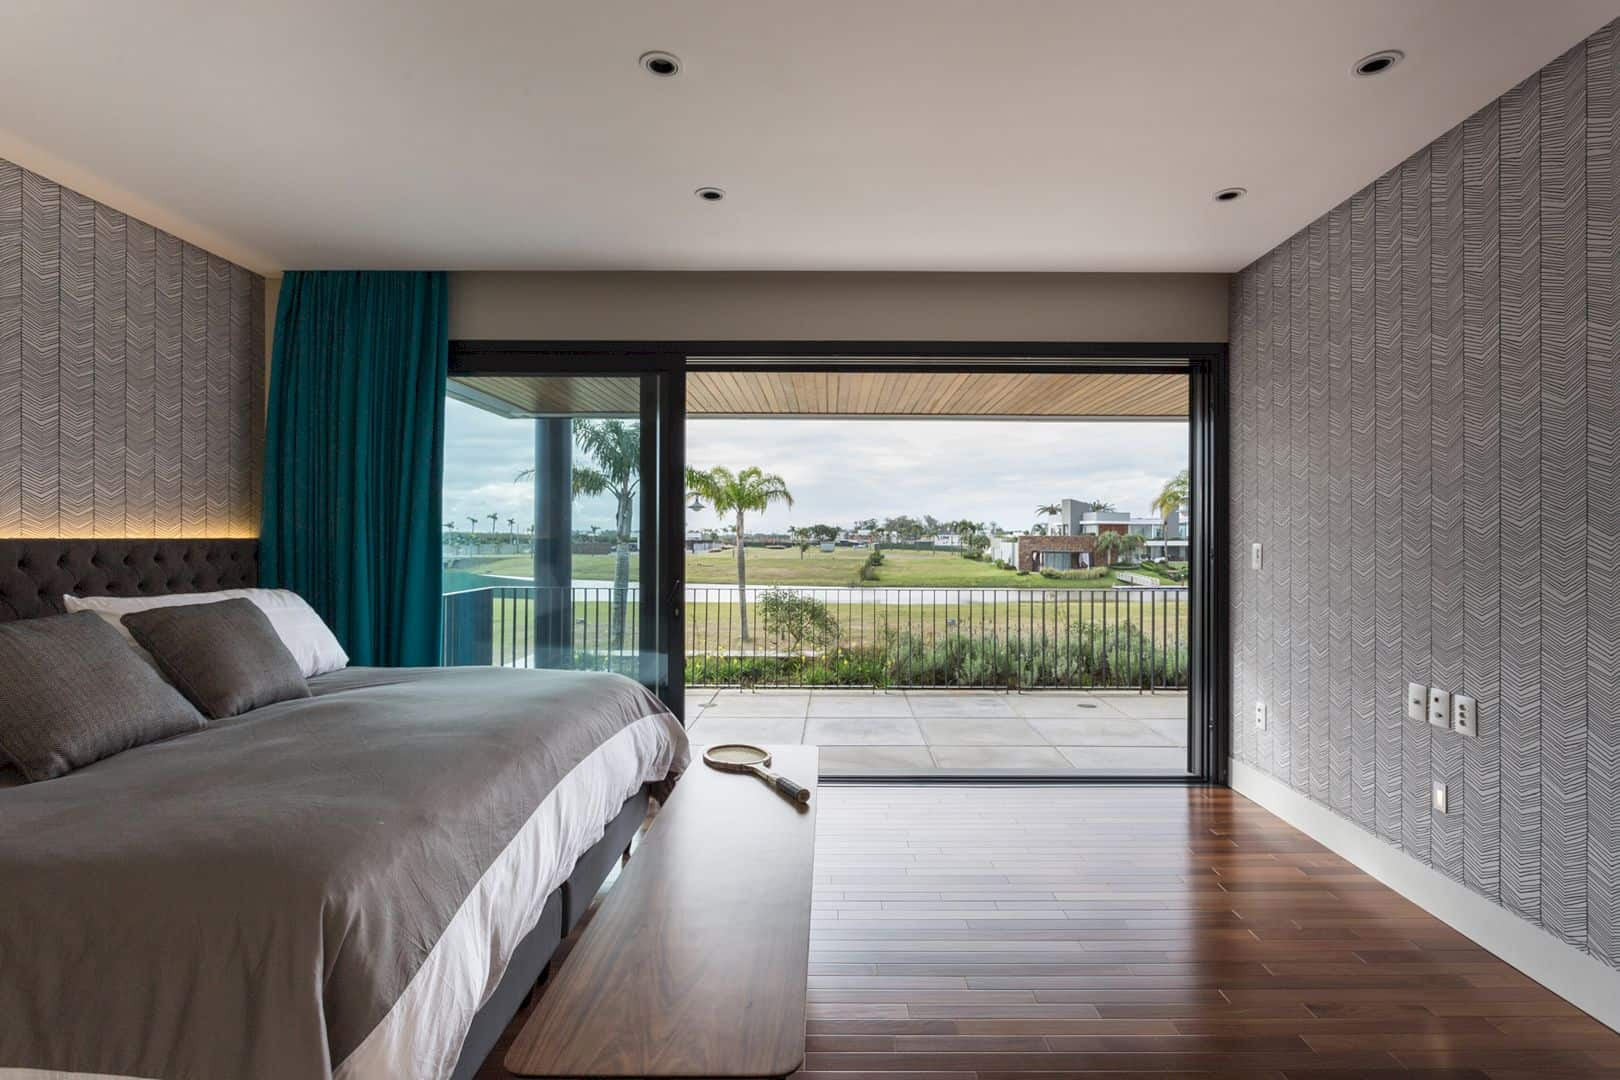 Casa R & L An Interior That Reflects Welcoming Personalities And Minimalist Aesthetics 2